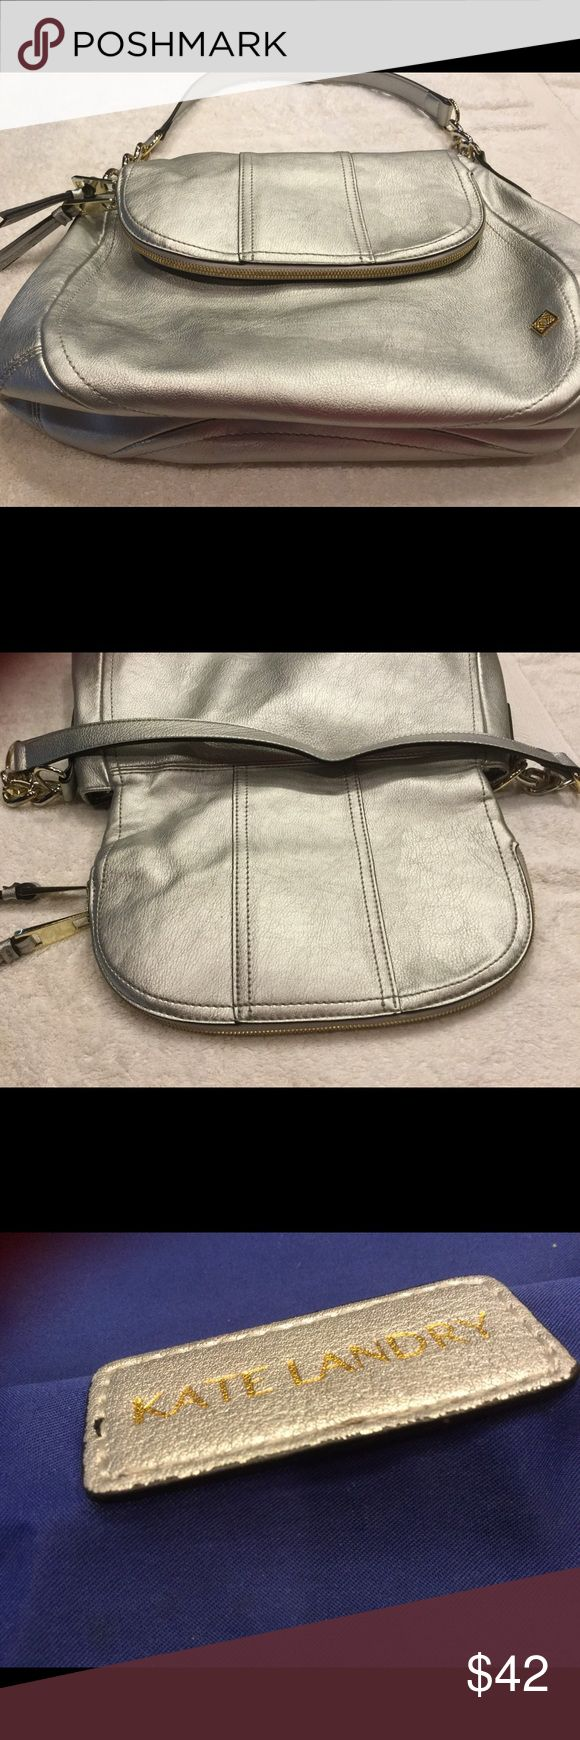 Silver Shoulder Bag Silver Bag with Gold & Silver Accents, flap of bag has extra storage 1 - used once Kate Landry Bags Shoulder Bags